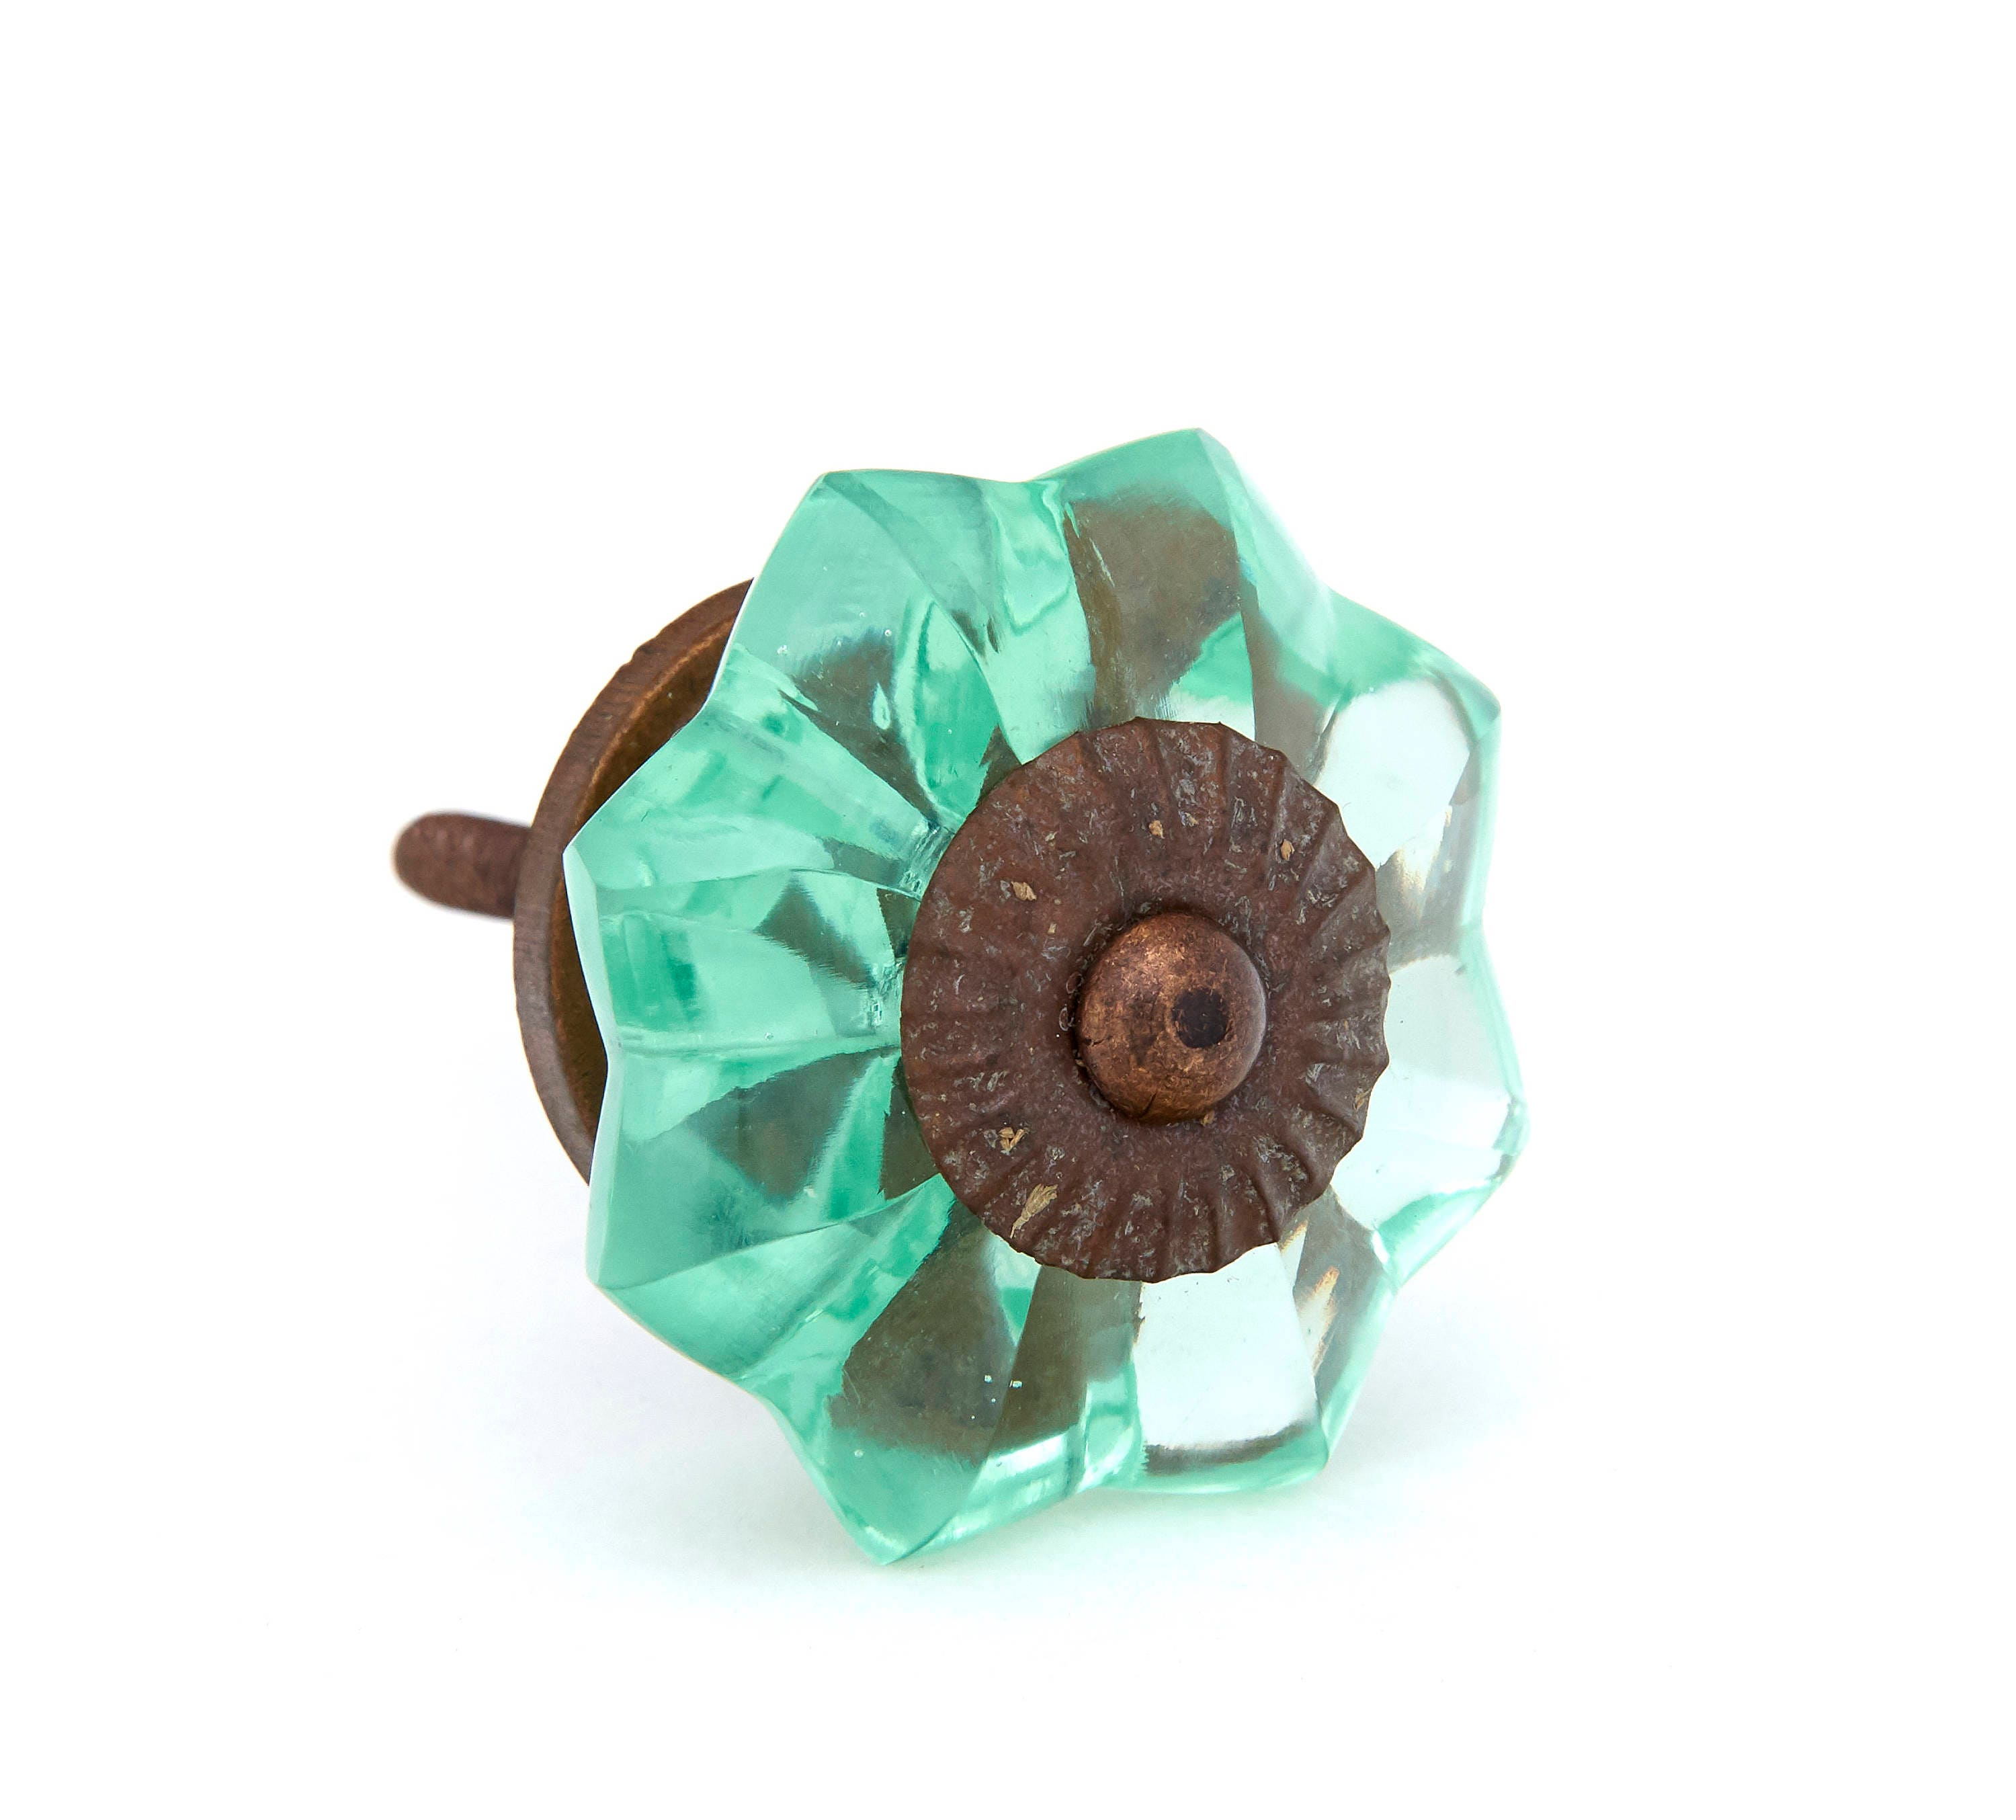 Kitchen Cabinet Pulls Glass Dresser Knobs Or Antique: Mint Green Glass Kitchen Cabinet Pulls Dresser Knobs With